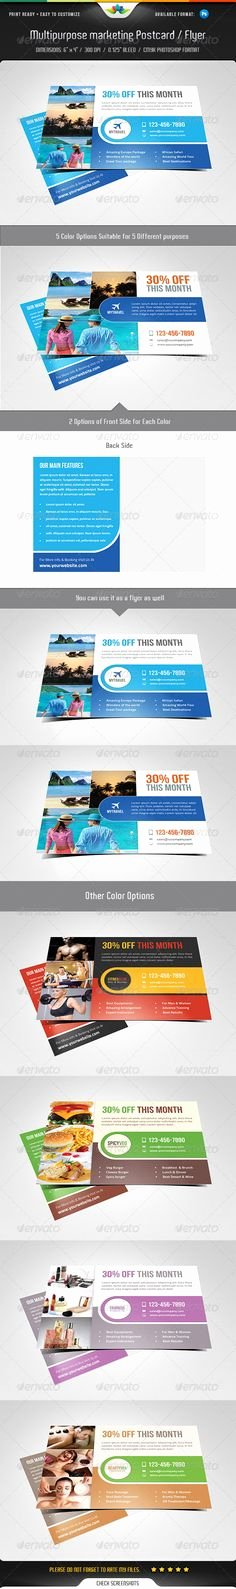 Vertical Postcard Layout Inspirational 1000 Images About Postcard Design On Pinterest